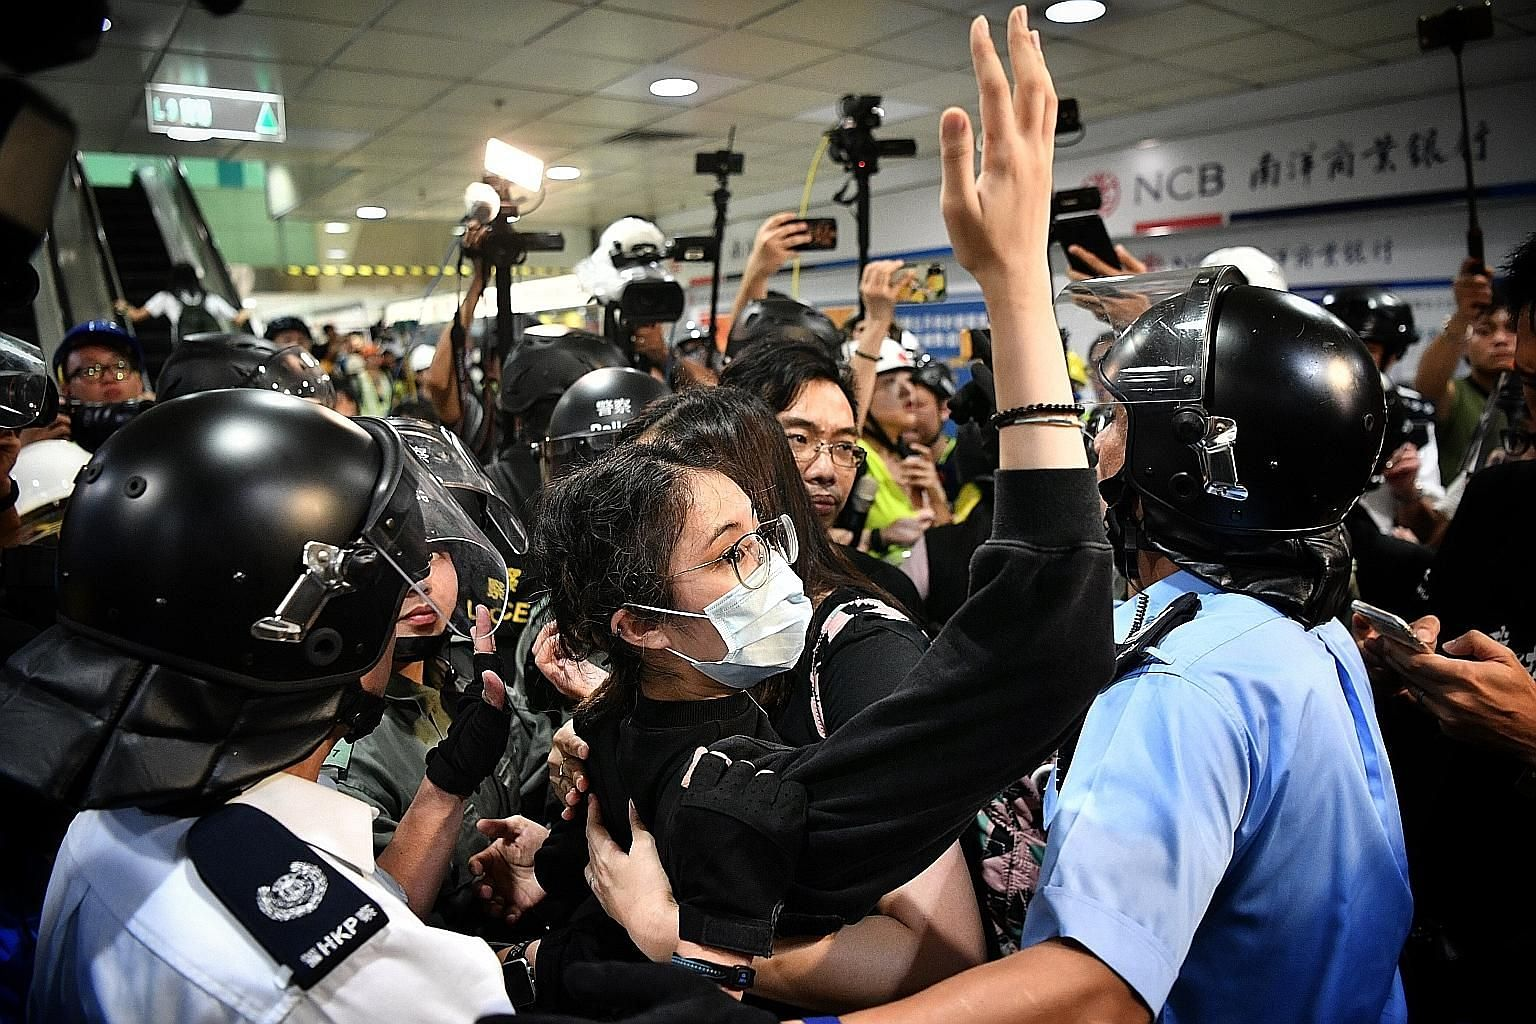 A young woman in a mask being taken away by the police at Lucky Plaza in Sha Tin on Sunday. Police arrested at least 40 people after the violence at New Town Plaza mall in the New Territories. The clashes left 28 injured, of which 11 were police offi